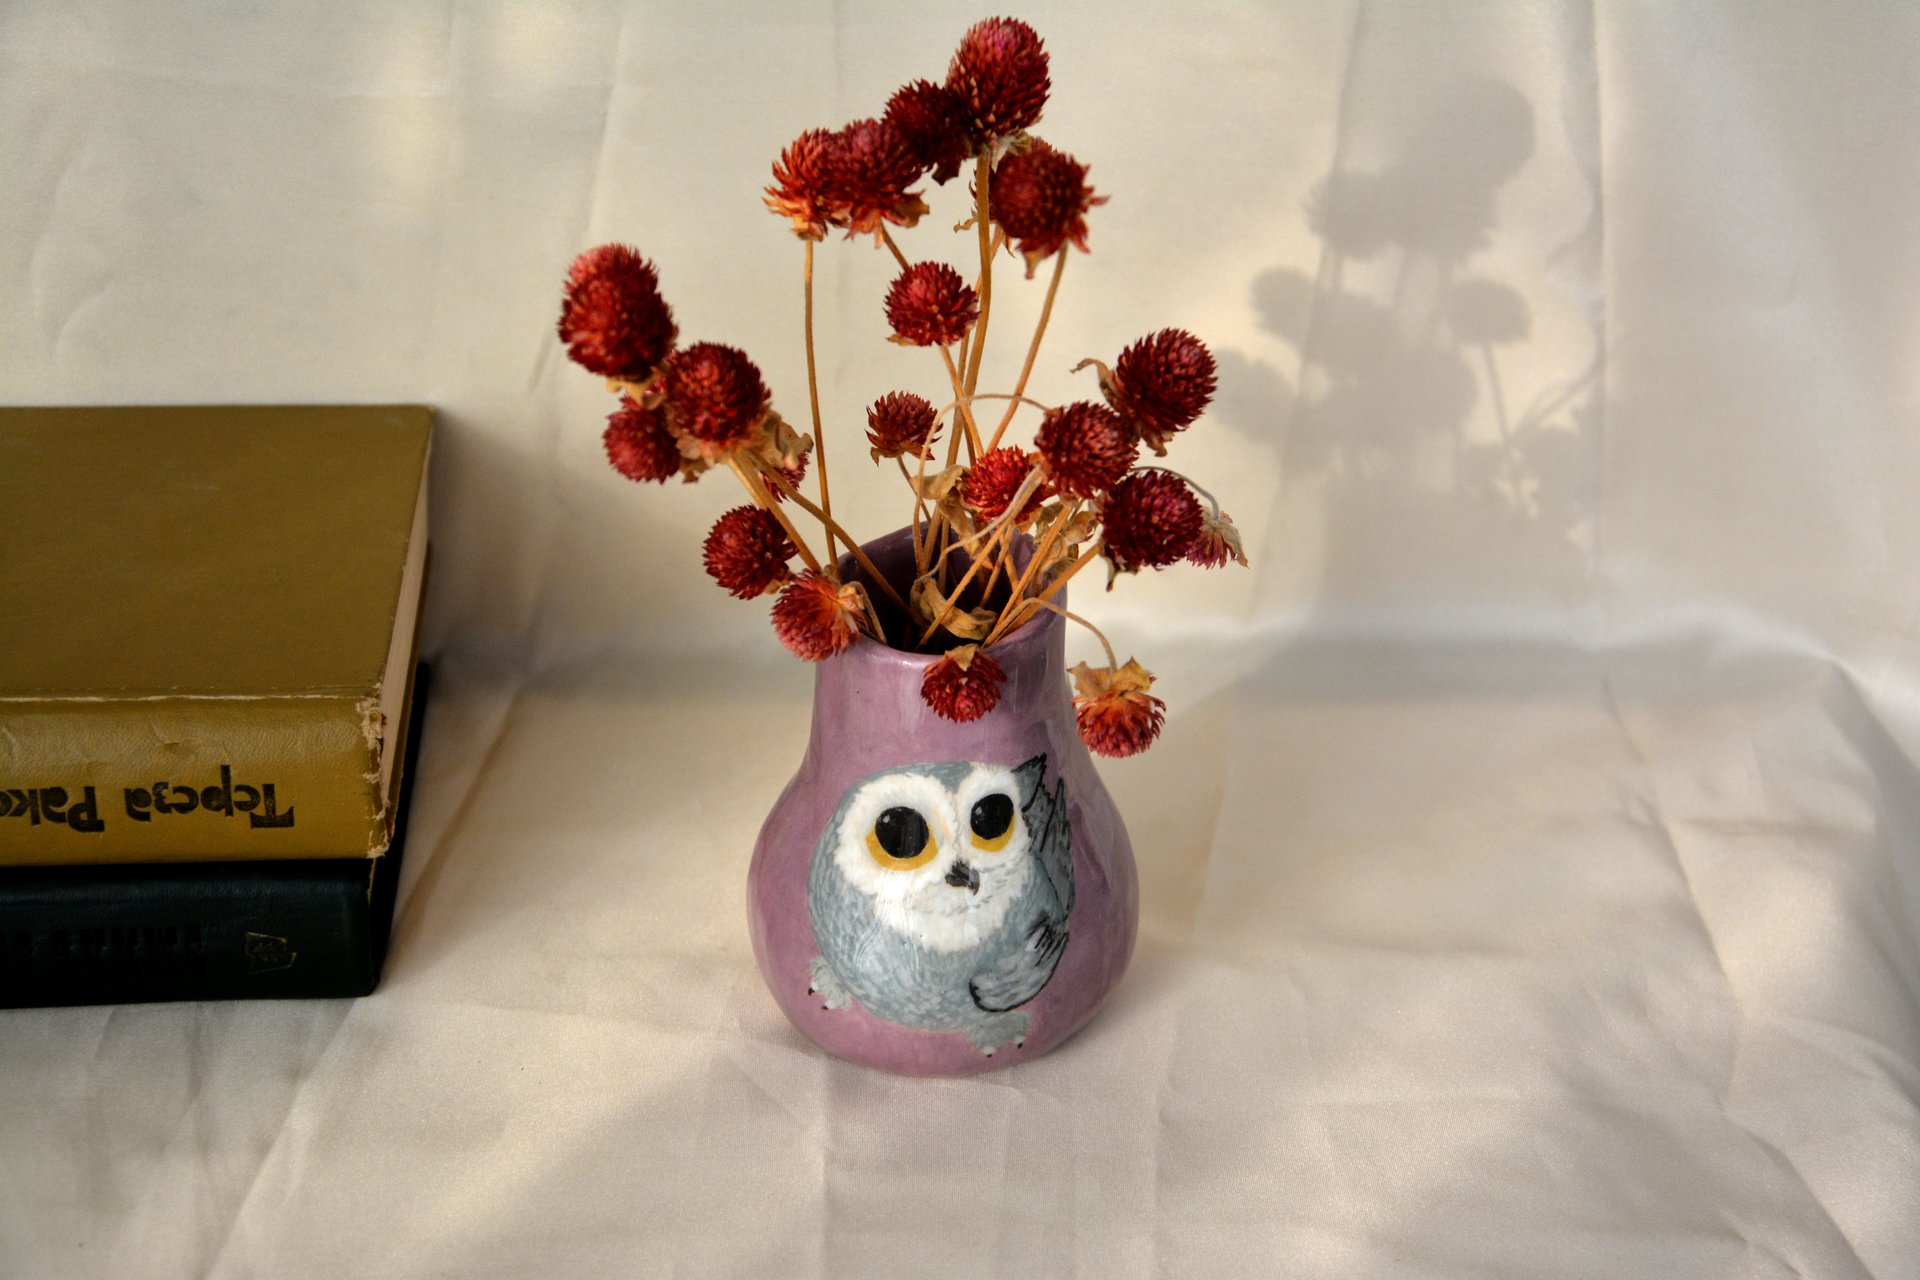 Small Vase or flowers «The Snowy owl», height - 10 cm. Photo 986.